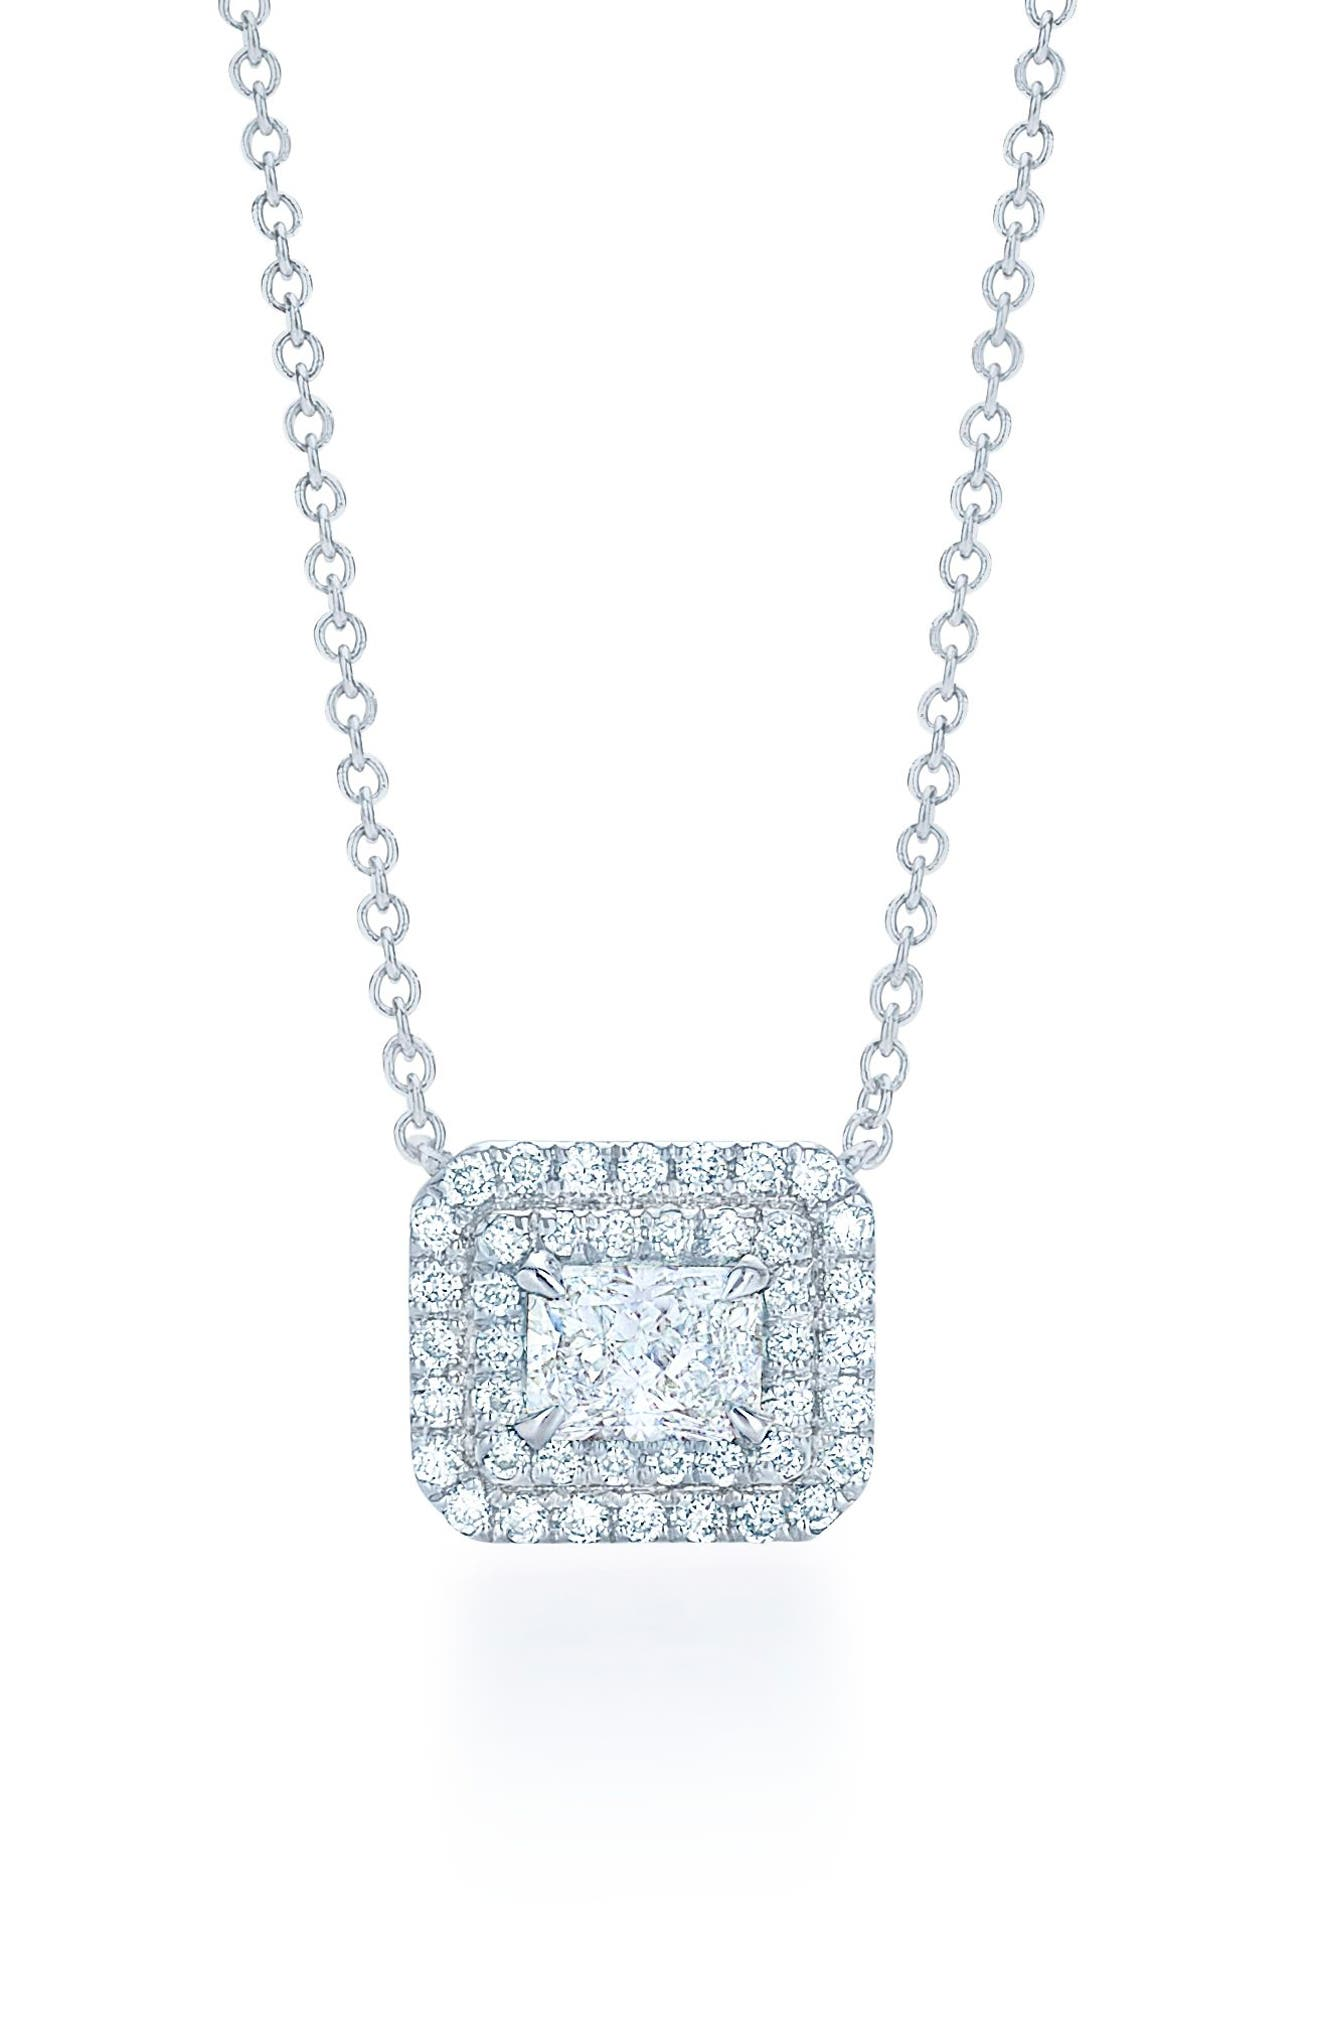 Radiant Cut Diamond Necklace,                         Main,                         color, White Gold